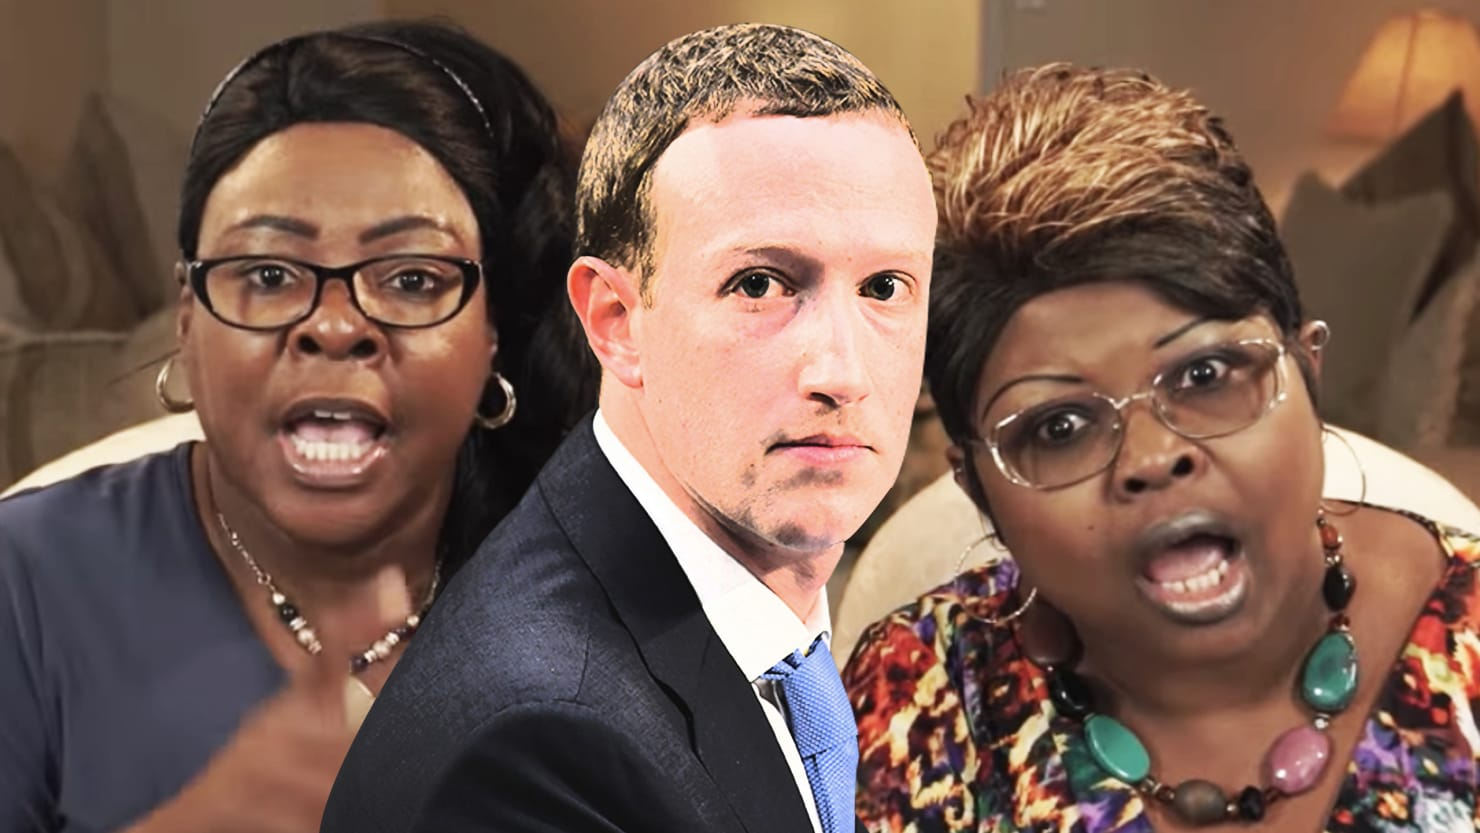 72a5d492043 (VIDEO) Zuckerberg We Bet You Didn t Think Banning Two Black ...